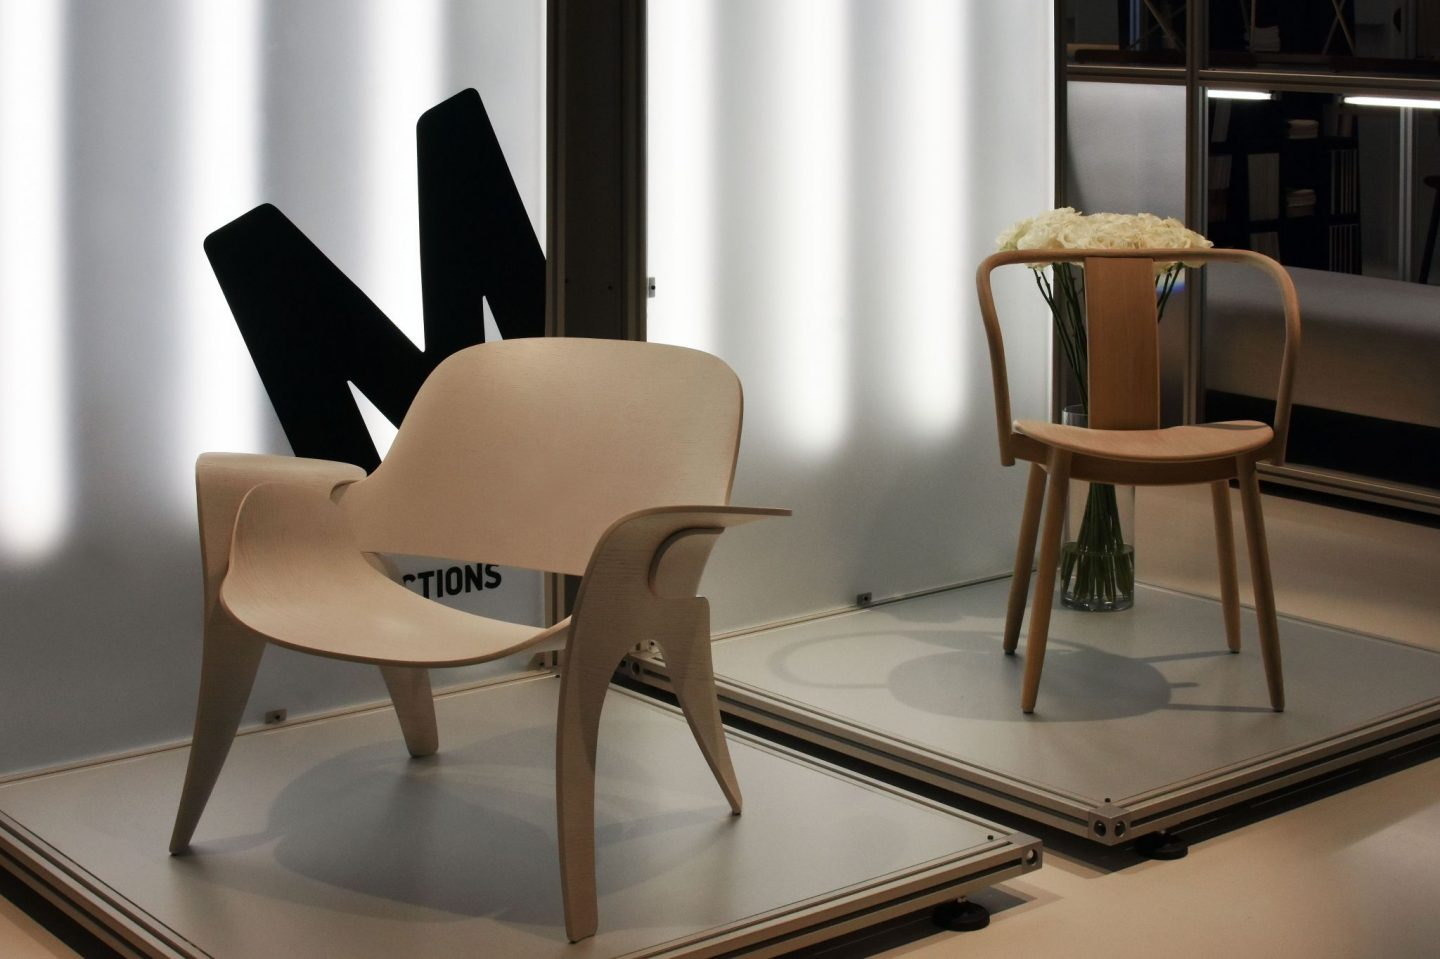 Stockholm furniture fair, hellopeagreen, Warm nordic, interiors blog, trade show report